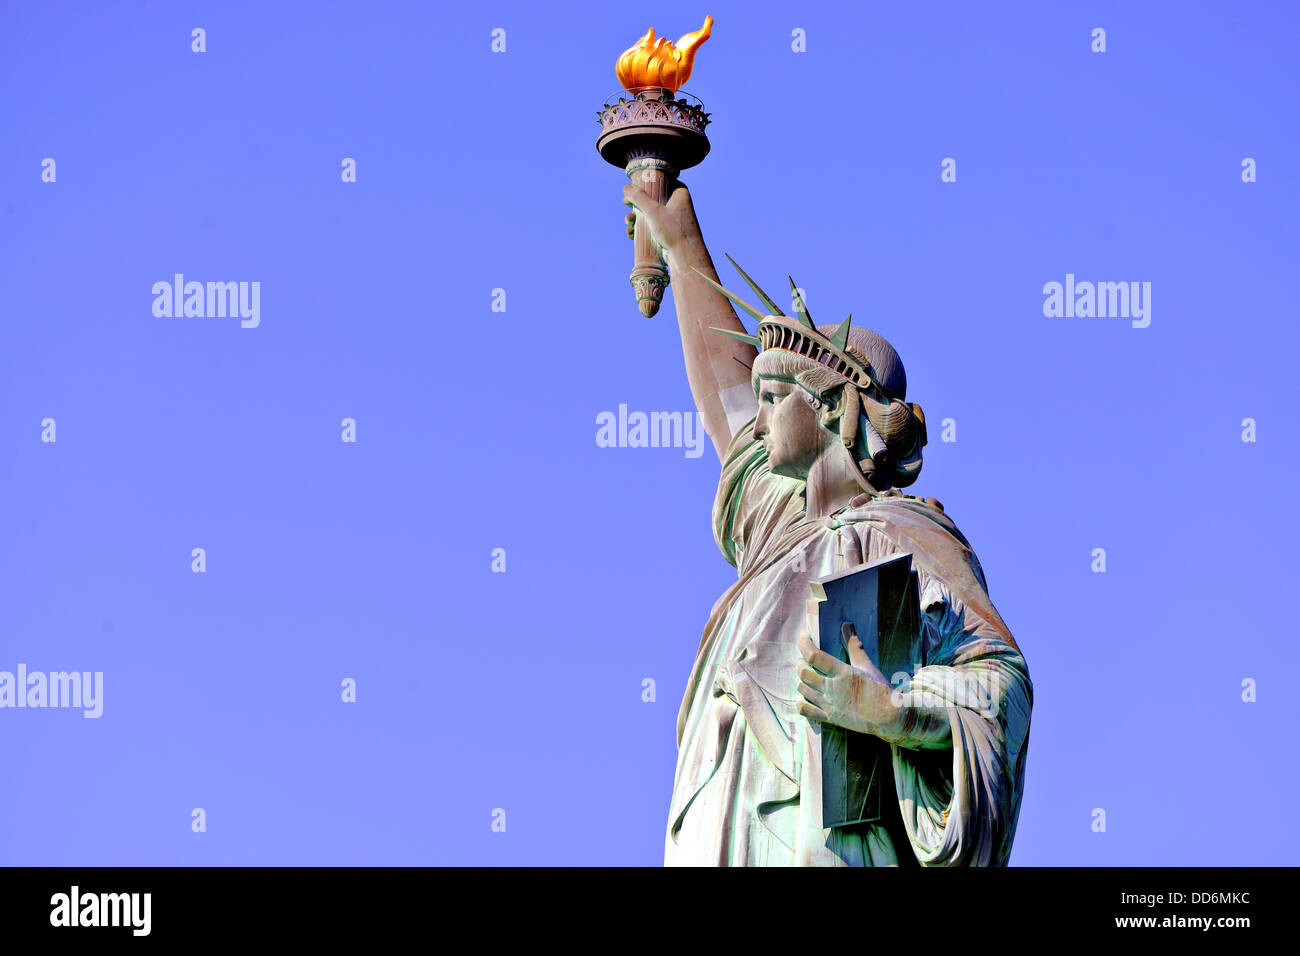 Statue of Liberty in New York City. - Stock Image